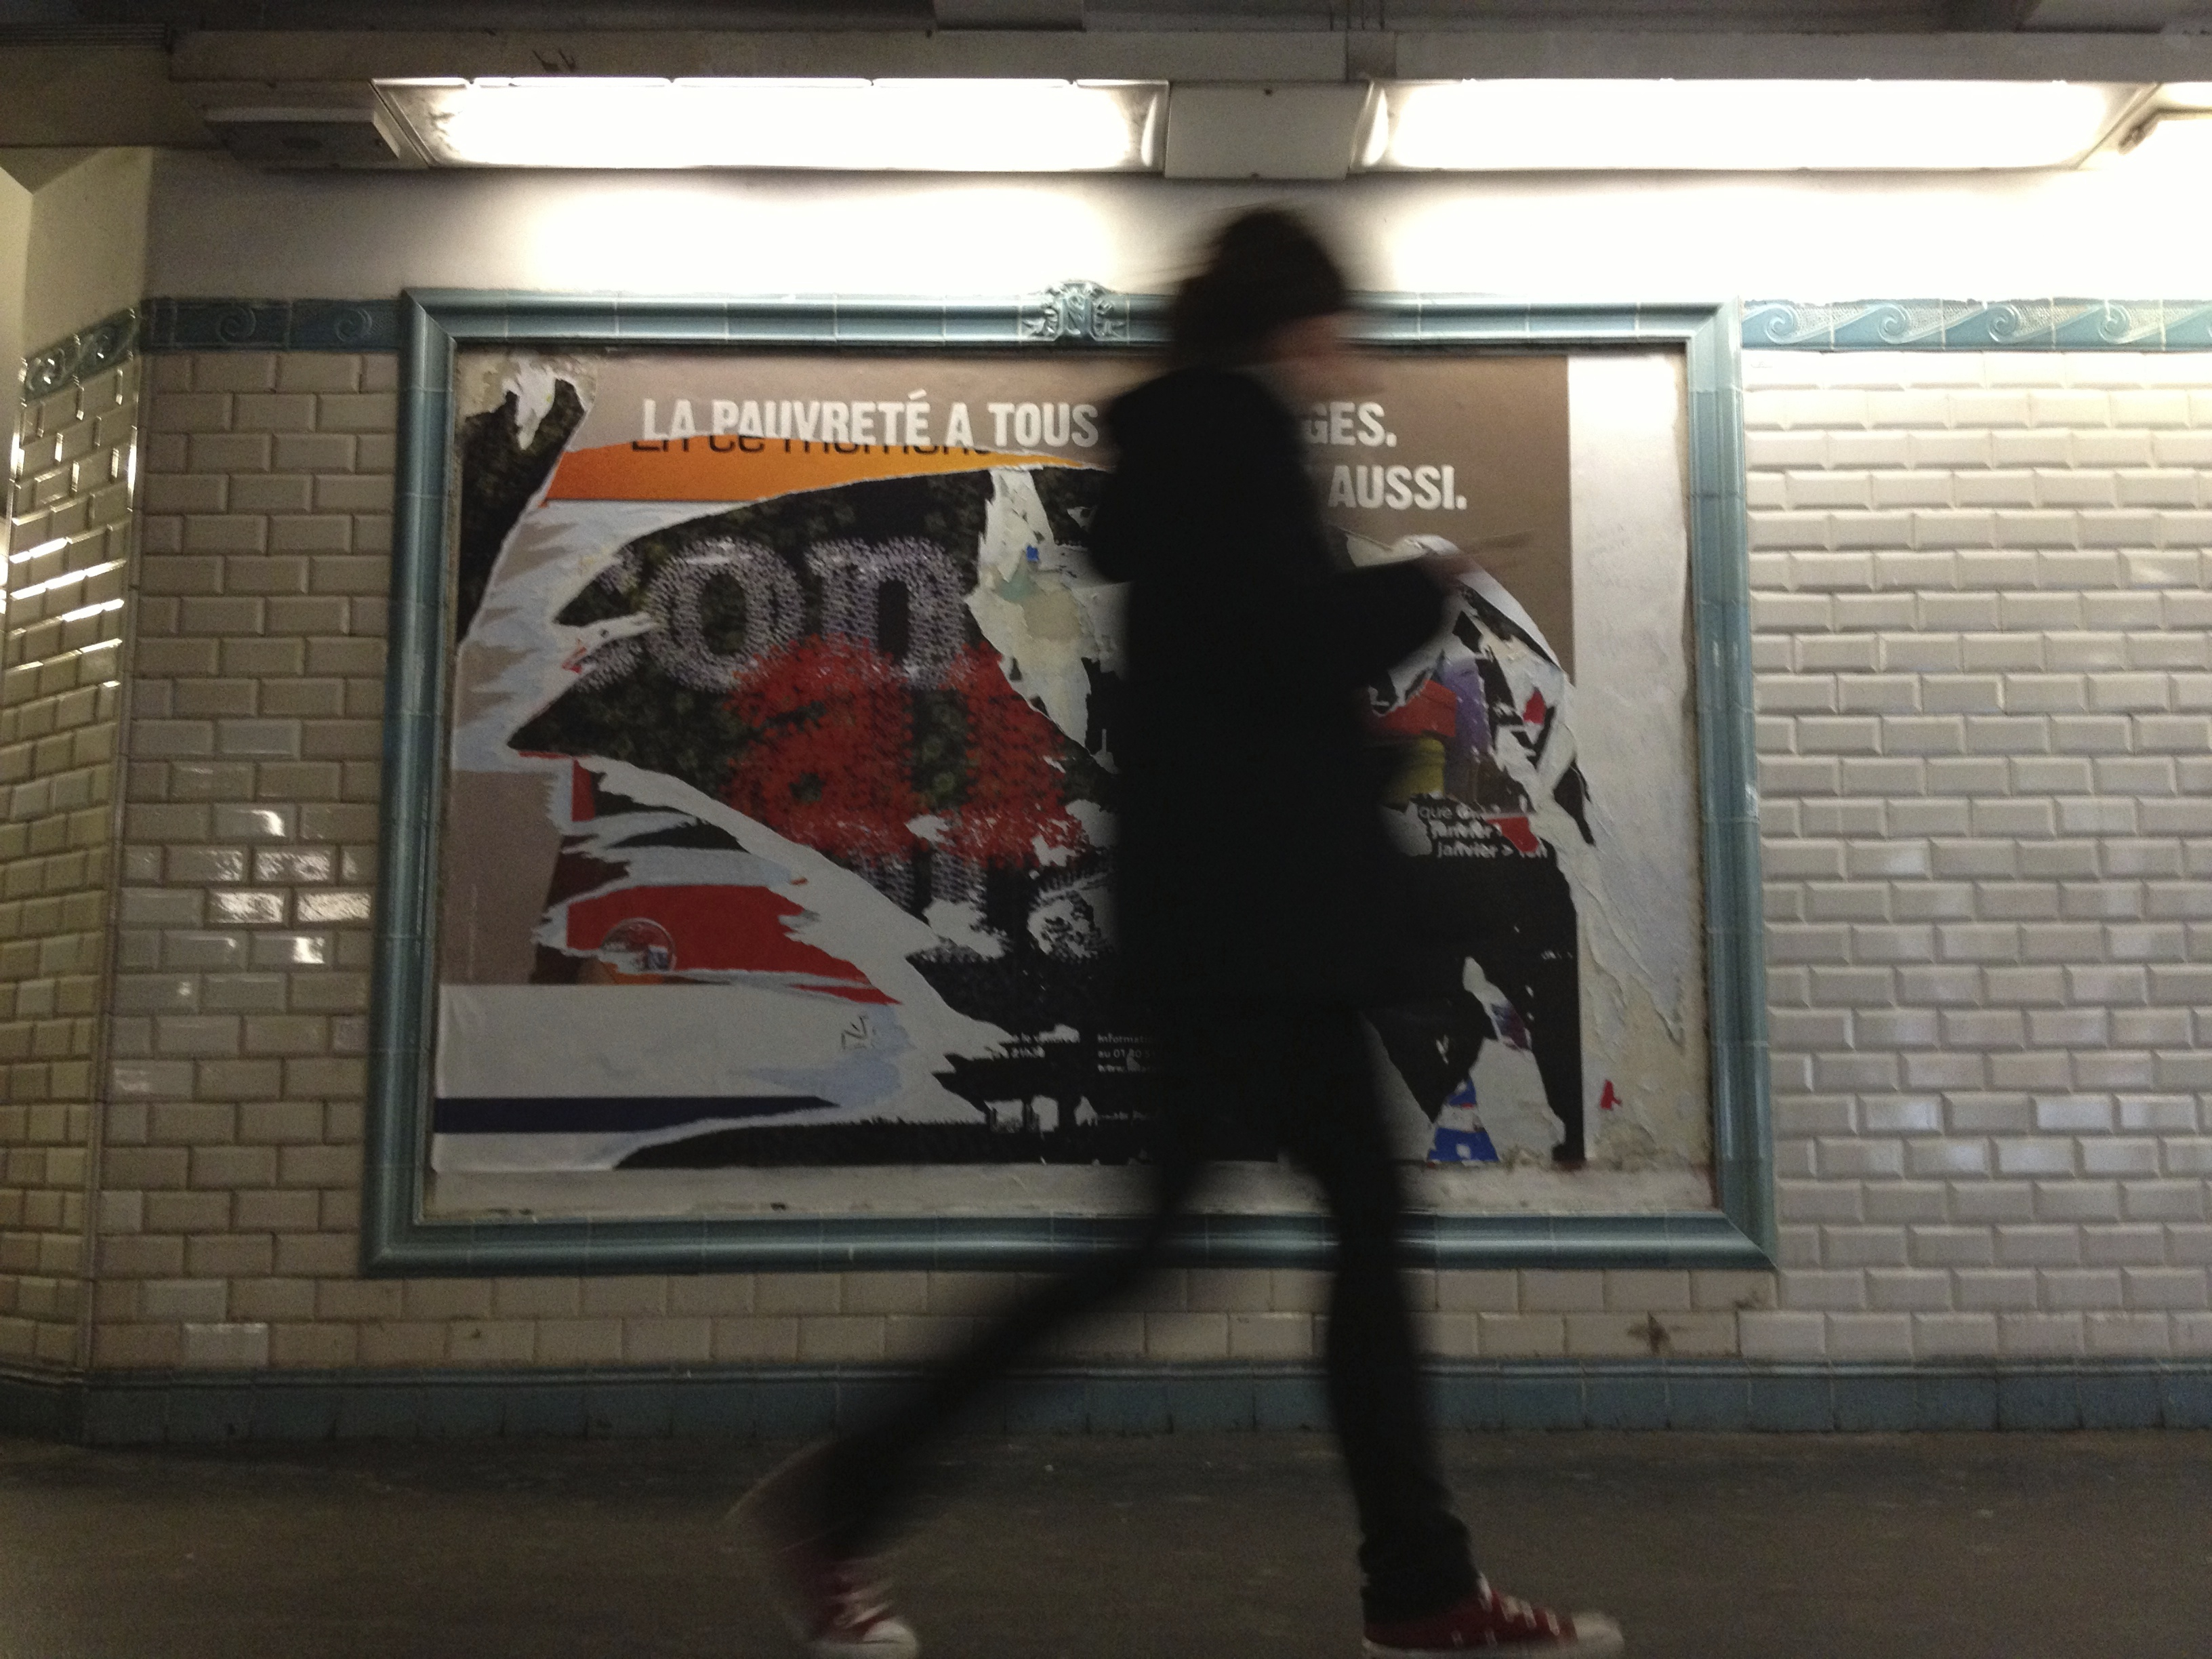 Paris_billboard+Blur_person_IMG_1562.jpg